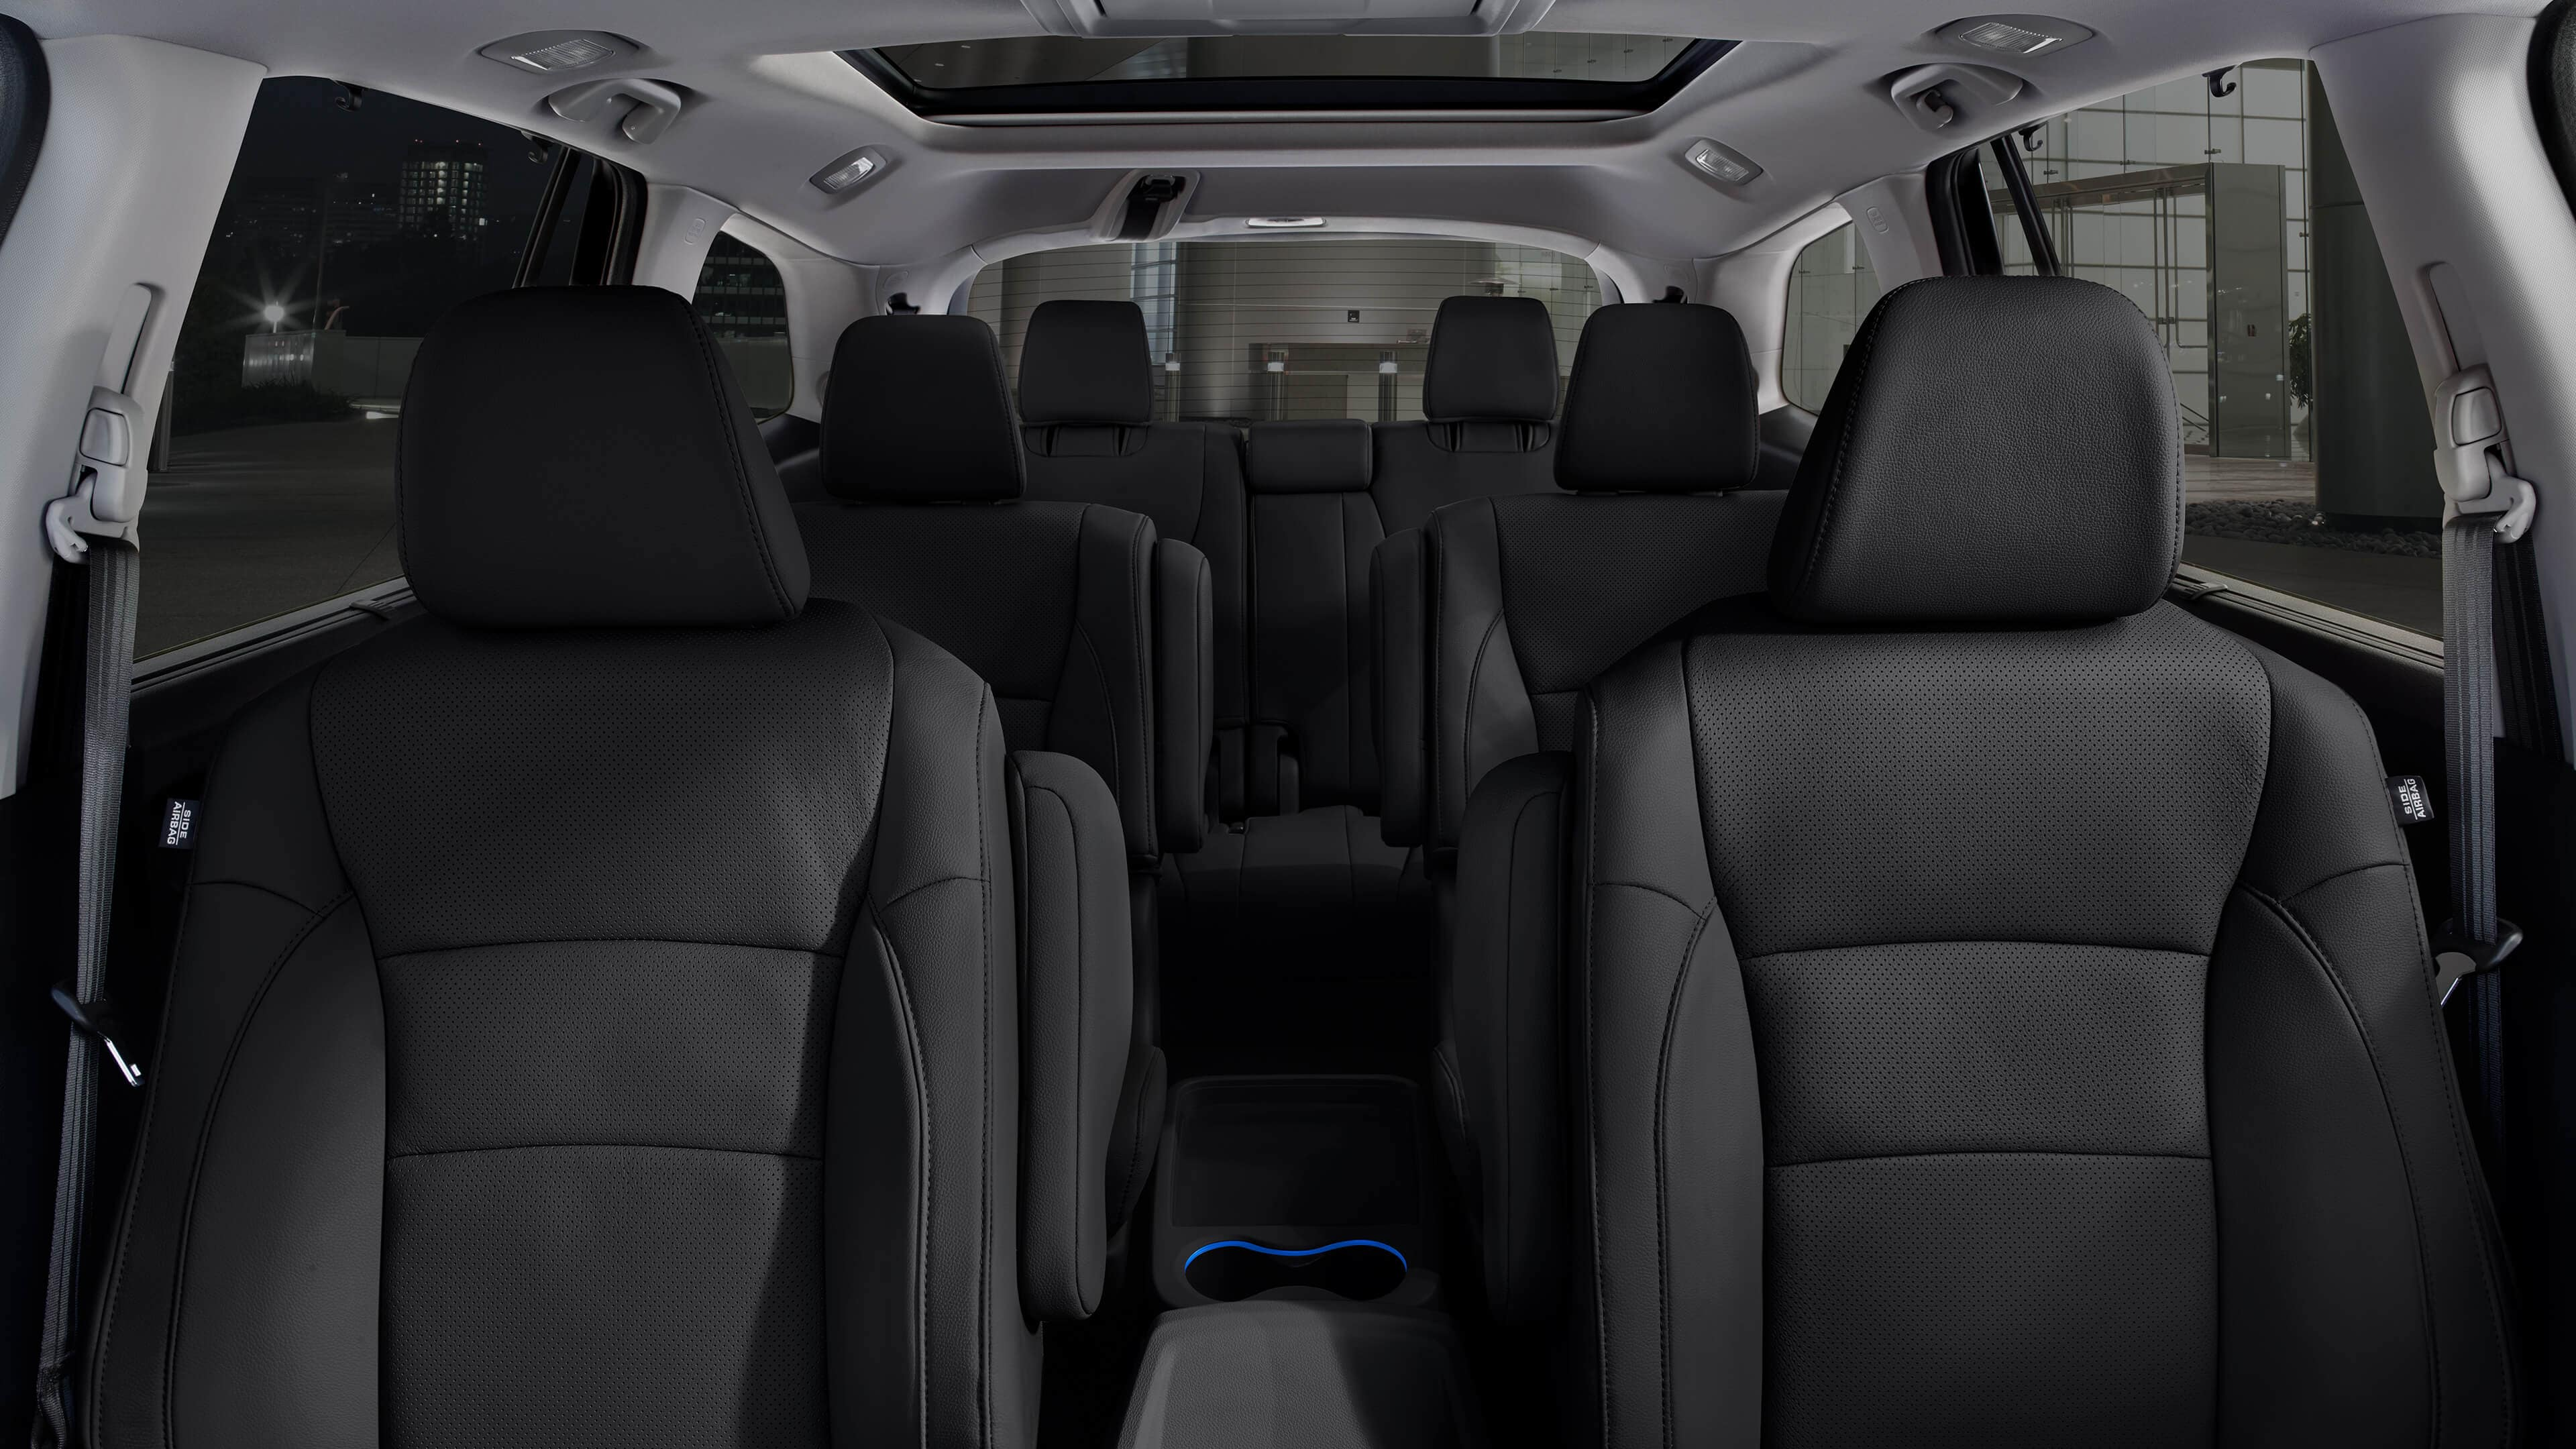 2020 Honda Pilot Seating at Richmond Hill Honda in Toronto and the GTA